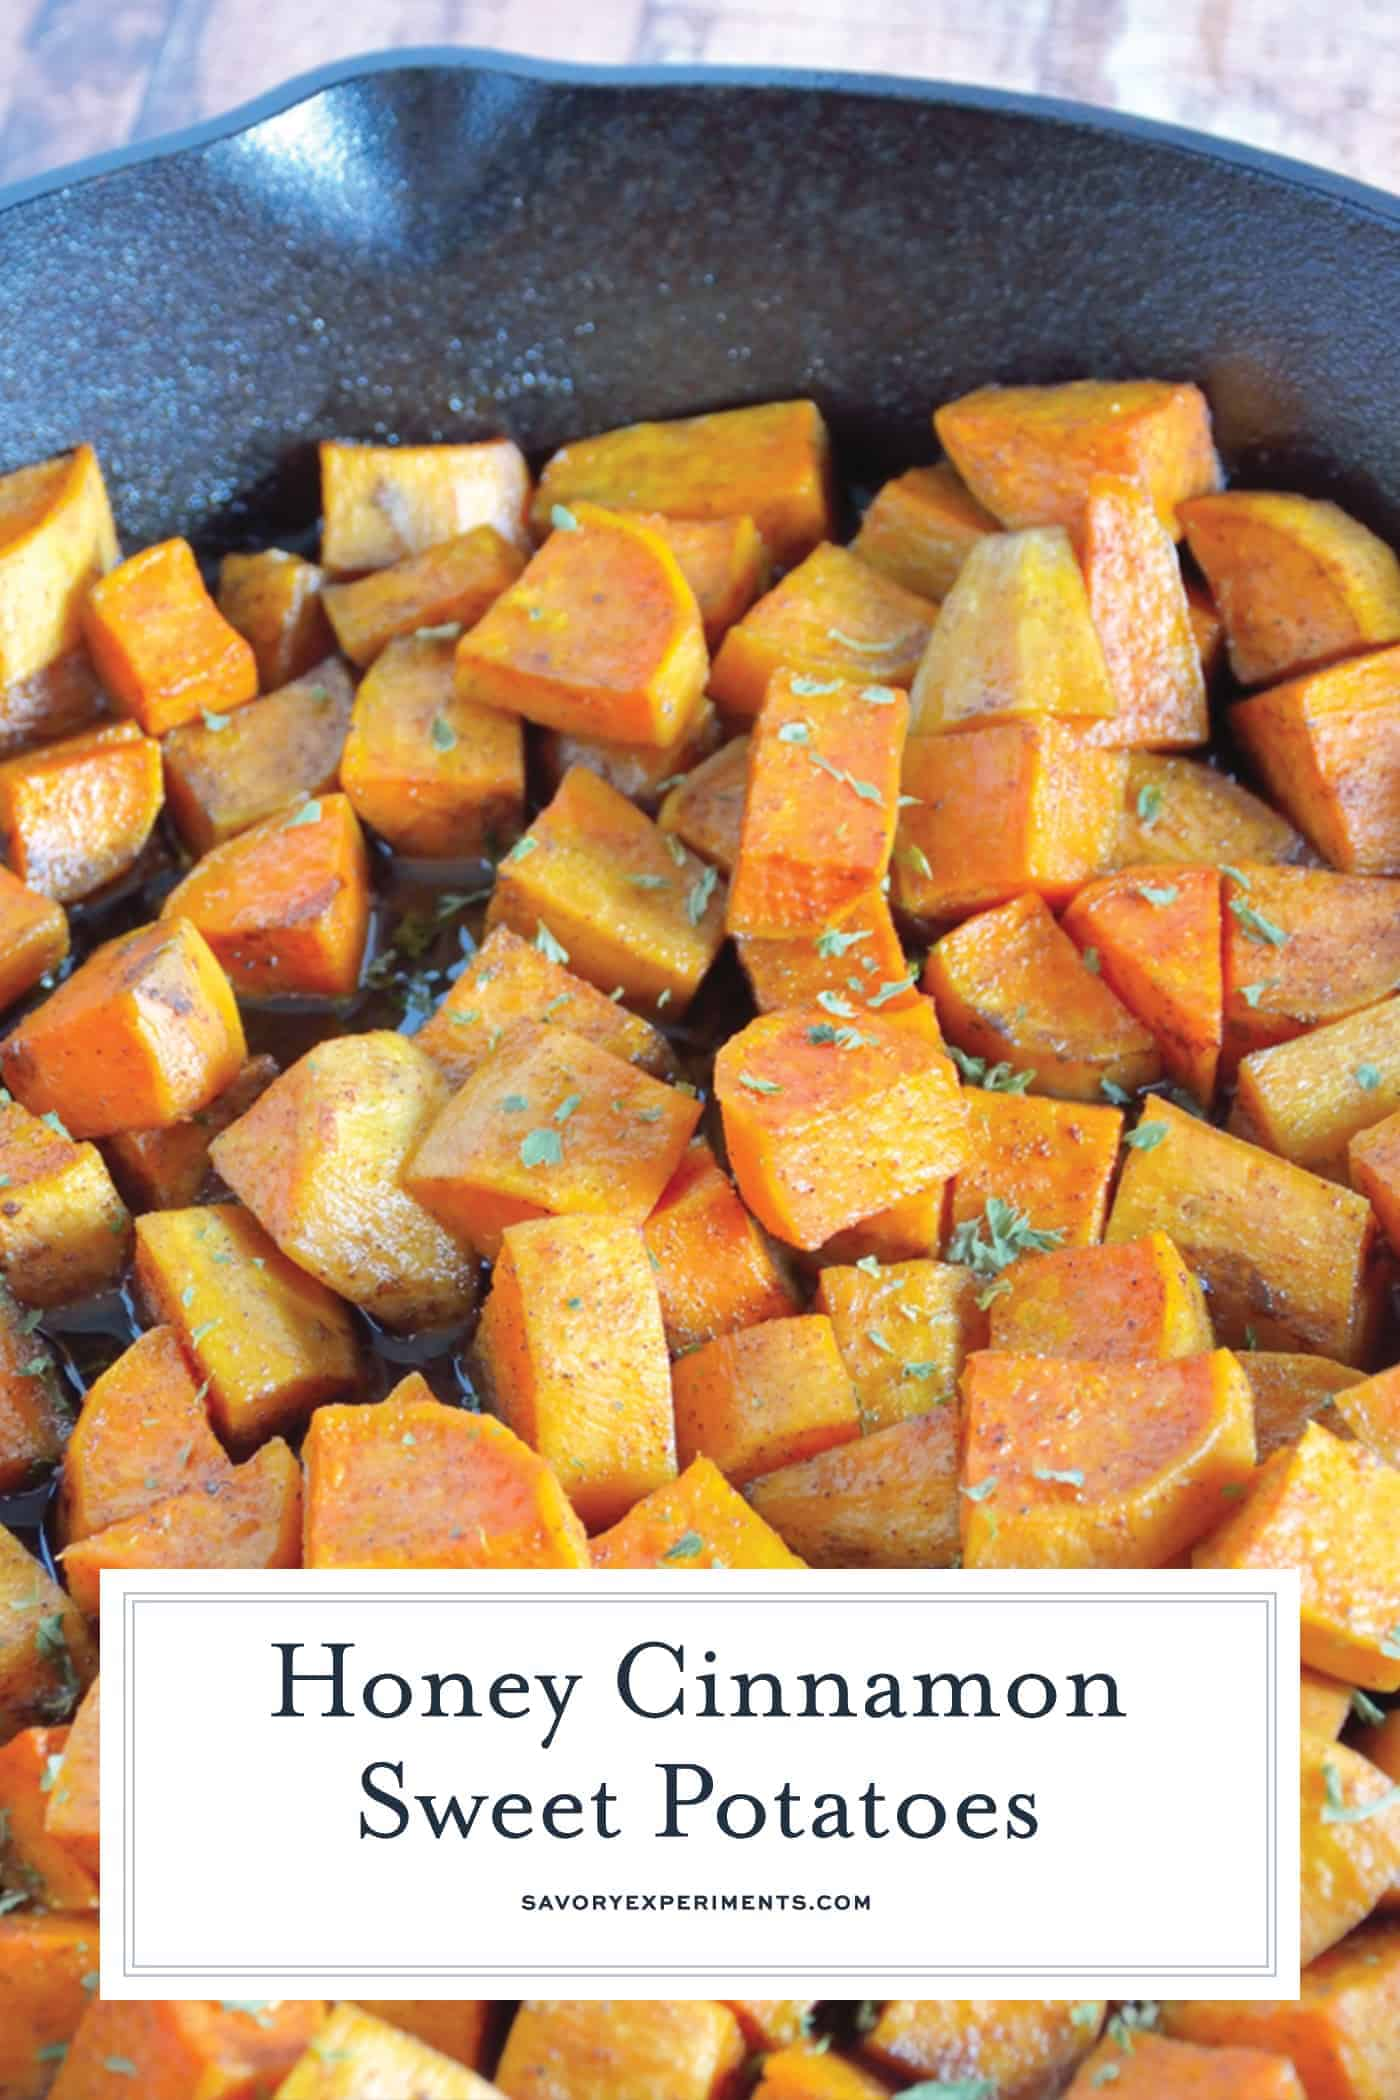 Honey Cinnamon Sweet Potatoes are a cast iron recipe that utilizes just a few simple ingredients. Sweet potatoes, honey, cinnamon and butter are all it takes for this verstile side dish recipe. #sweetpotatorecipes #castironrecipes www.savoryexperiments.com